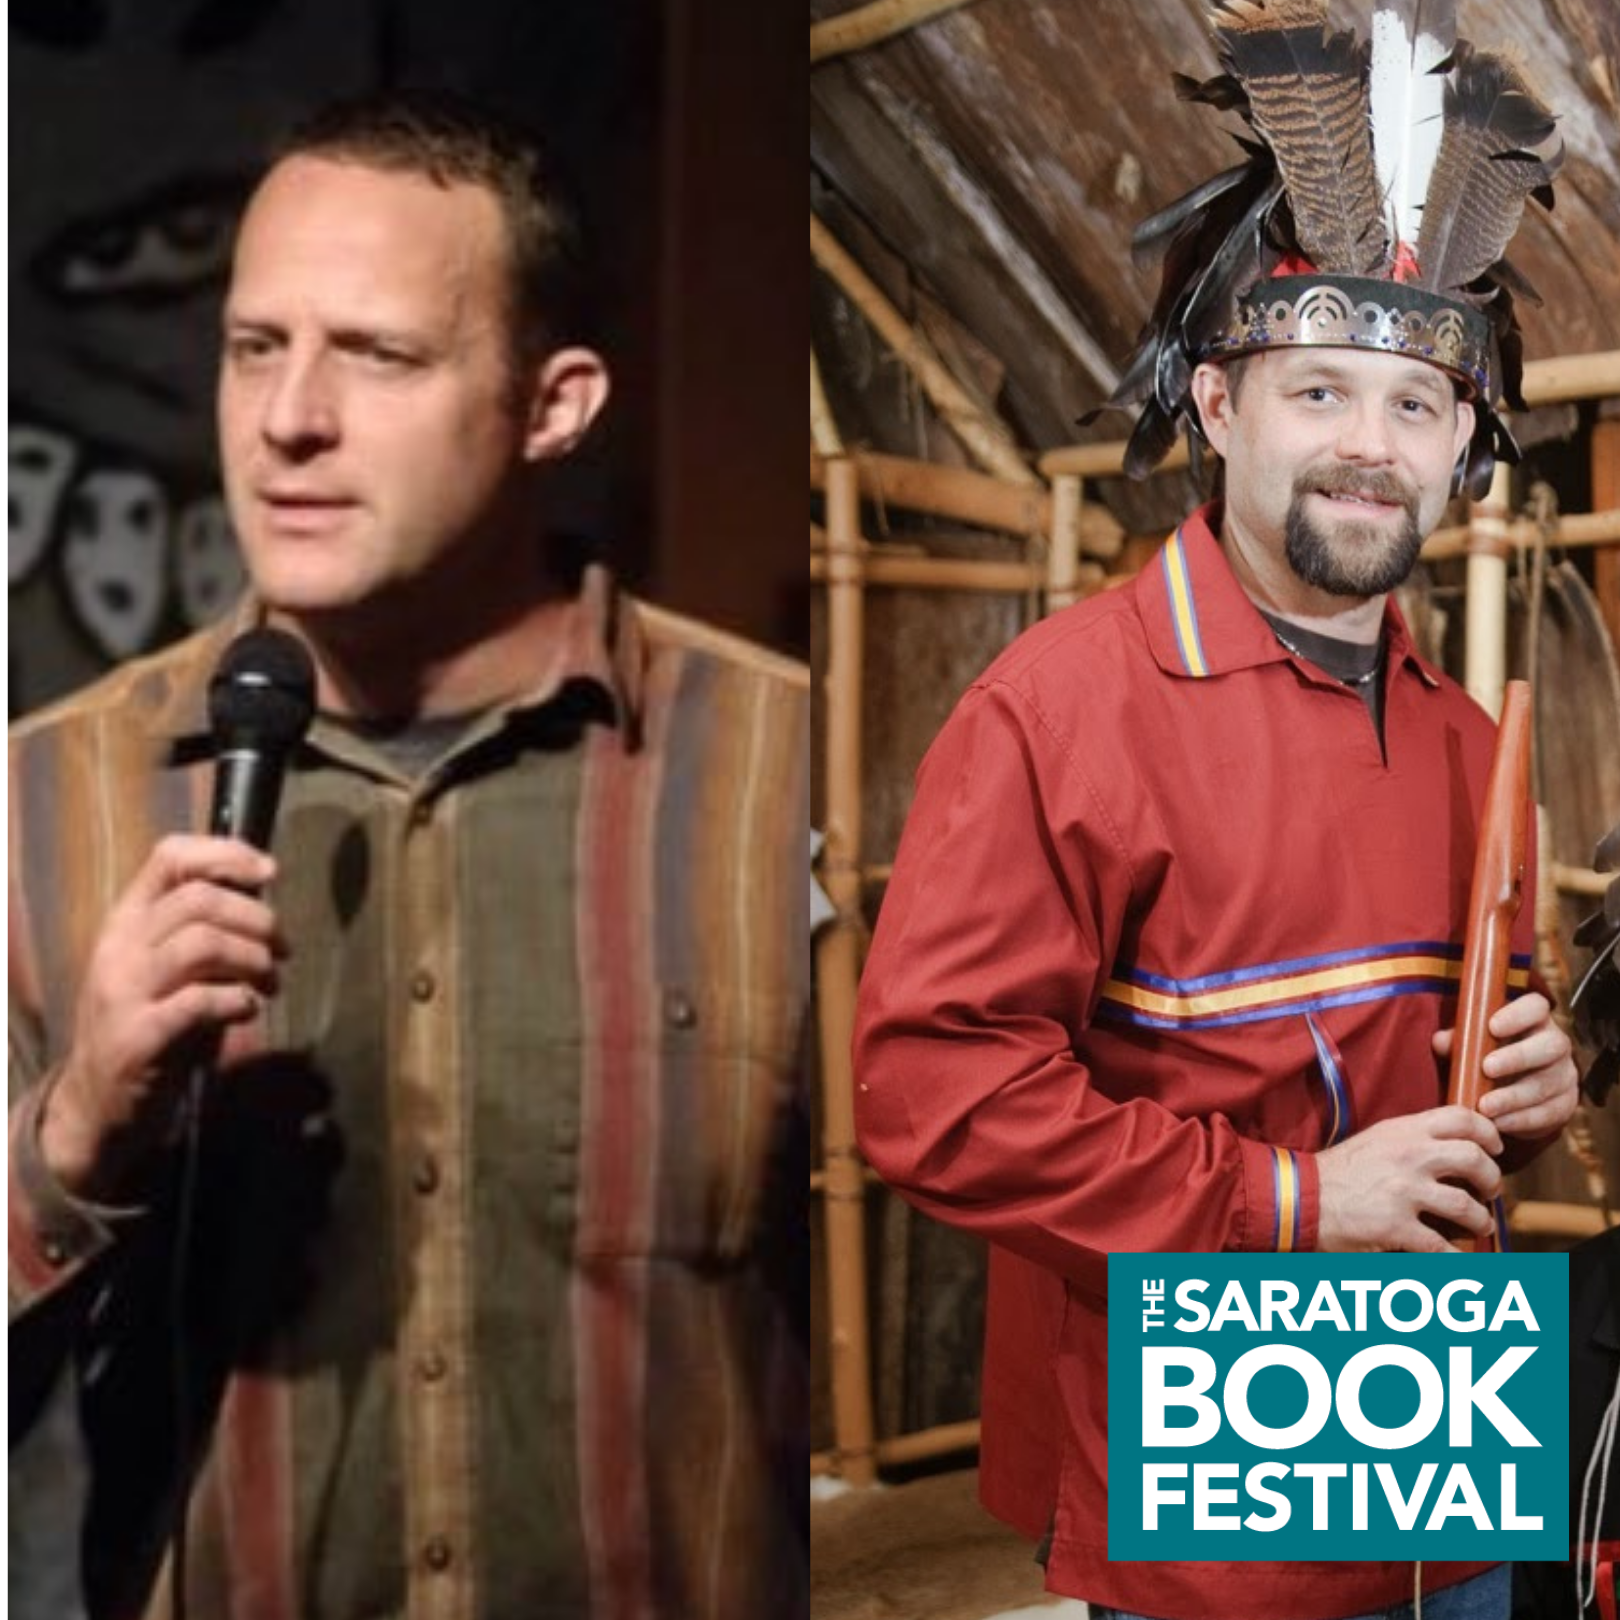 Saratoga Book Festival: Children's Storytelling Hour with James and Jesse Bruchac